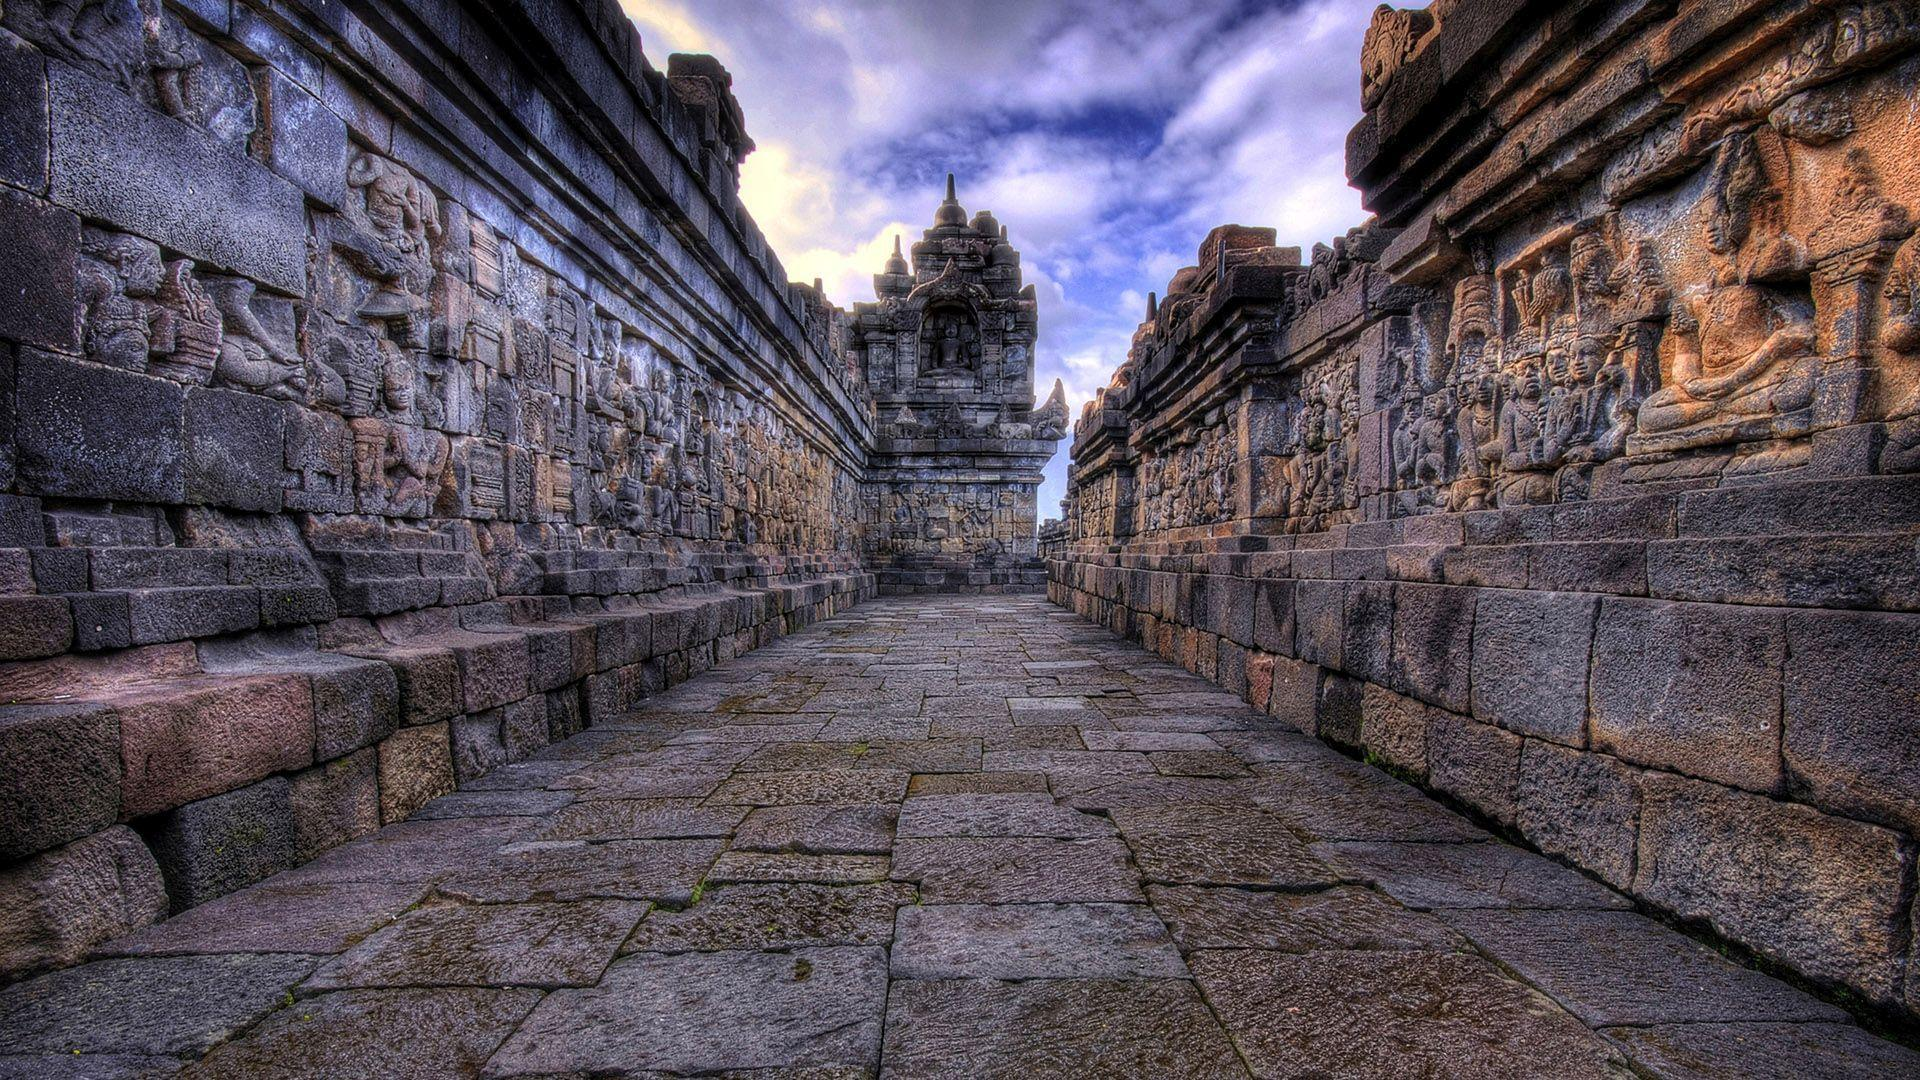 Cute Baby Ultra Hd Wallpapers Hd Angkor Wat In Cambodia Wallpaper Download Free 149723